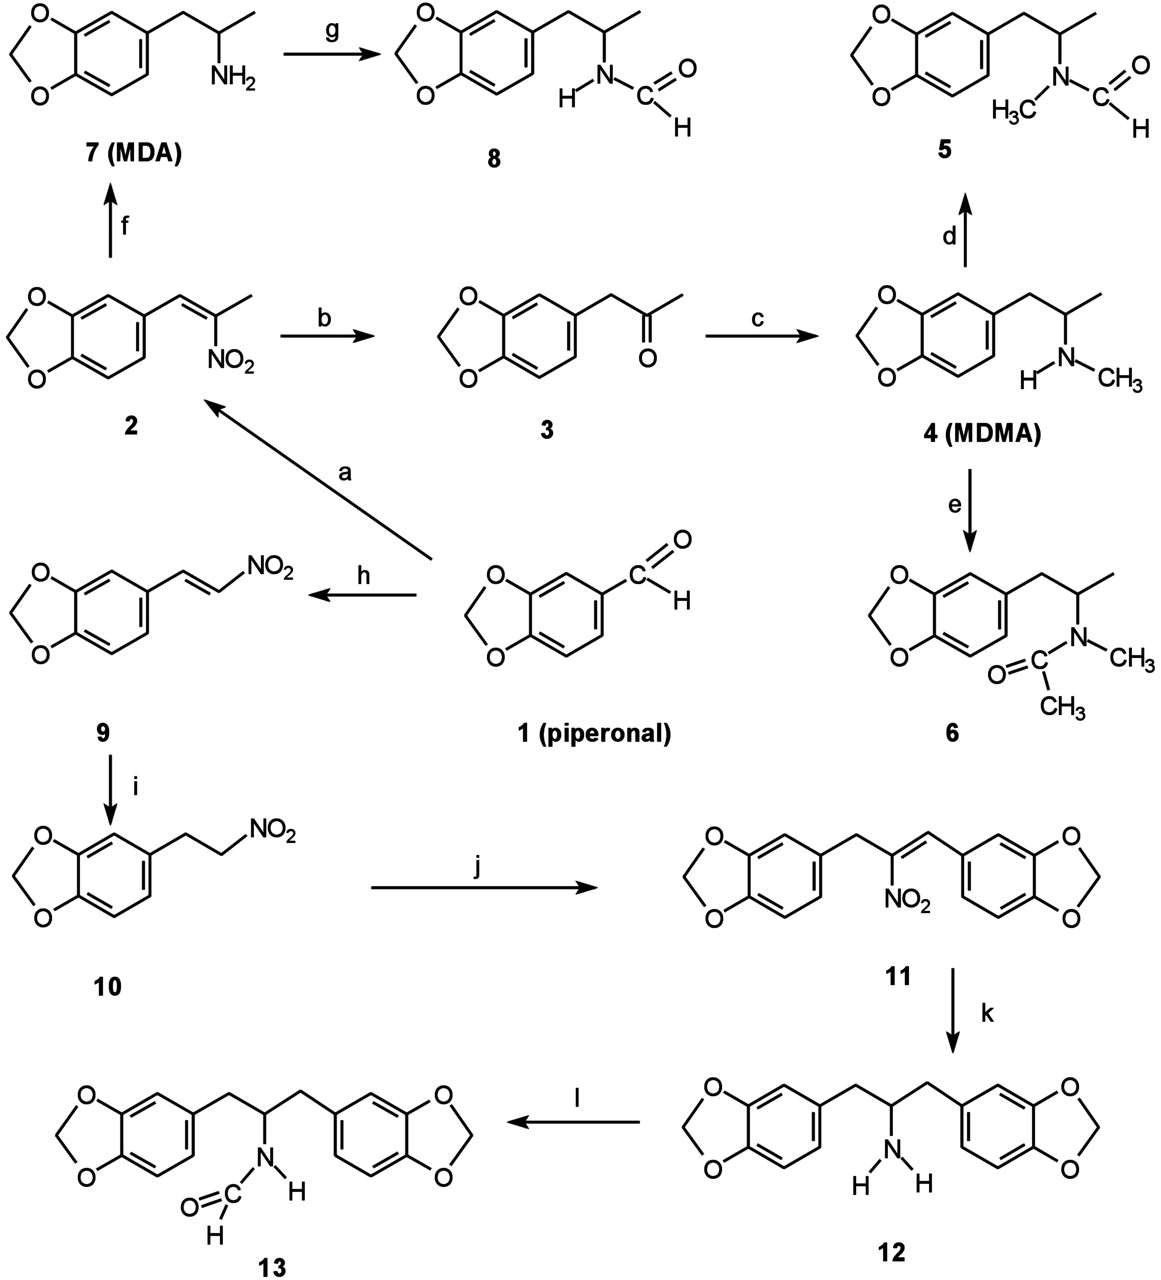 pharmacological characterization of ecstasy synthesis byproducts